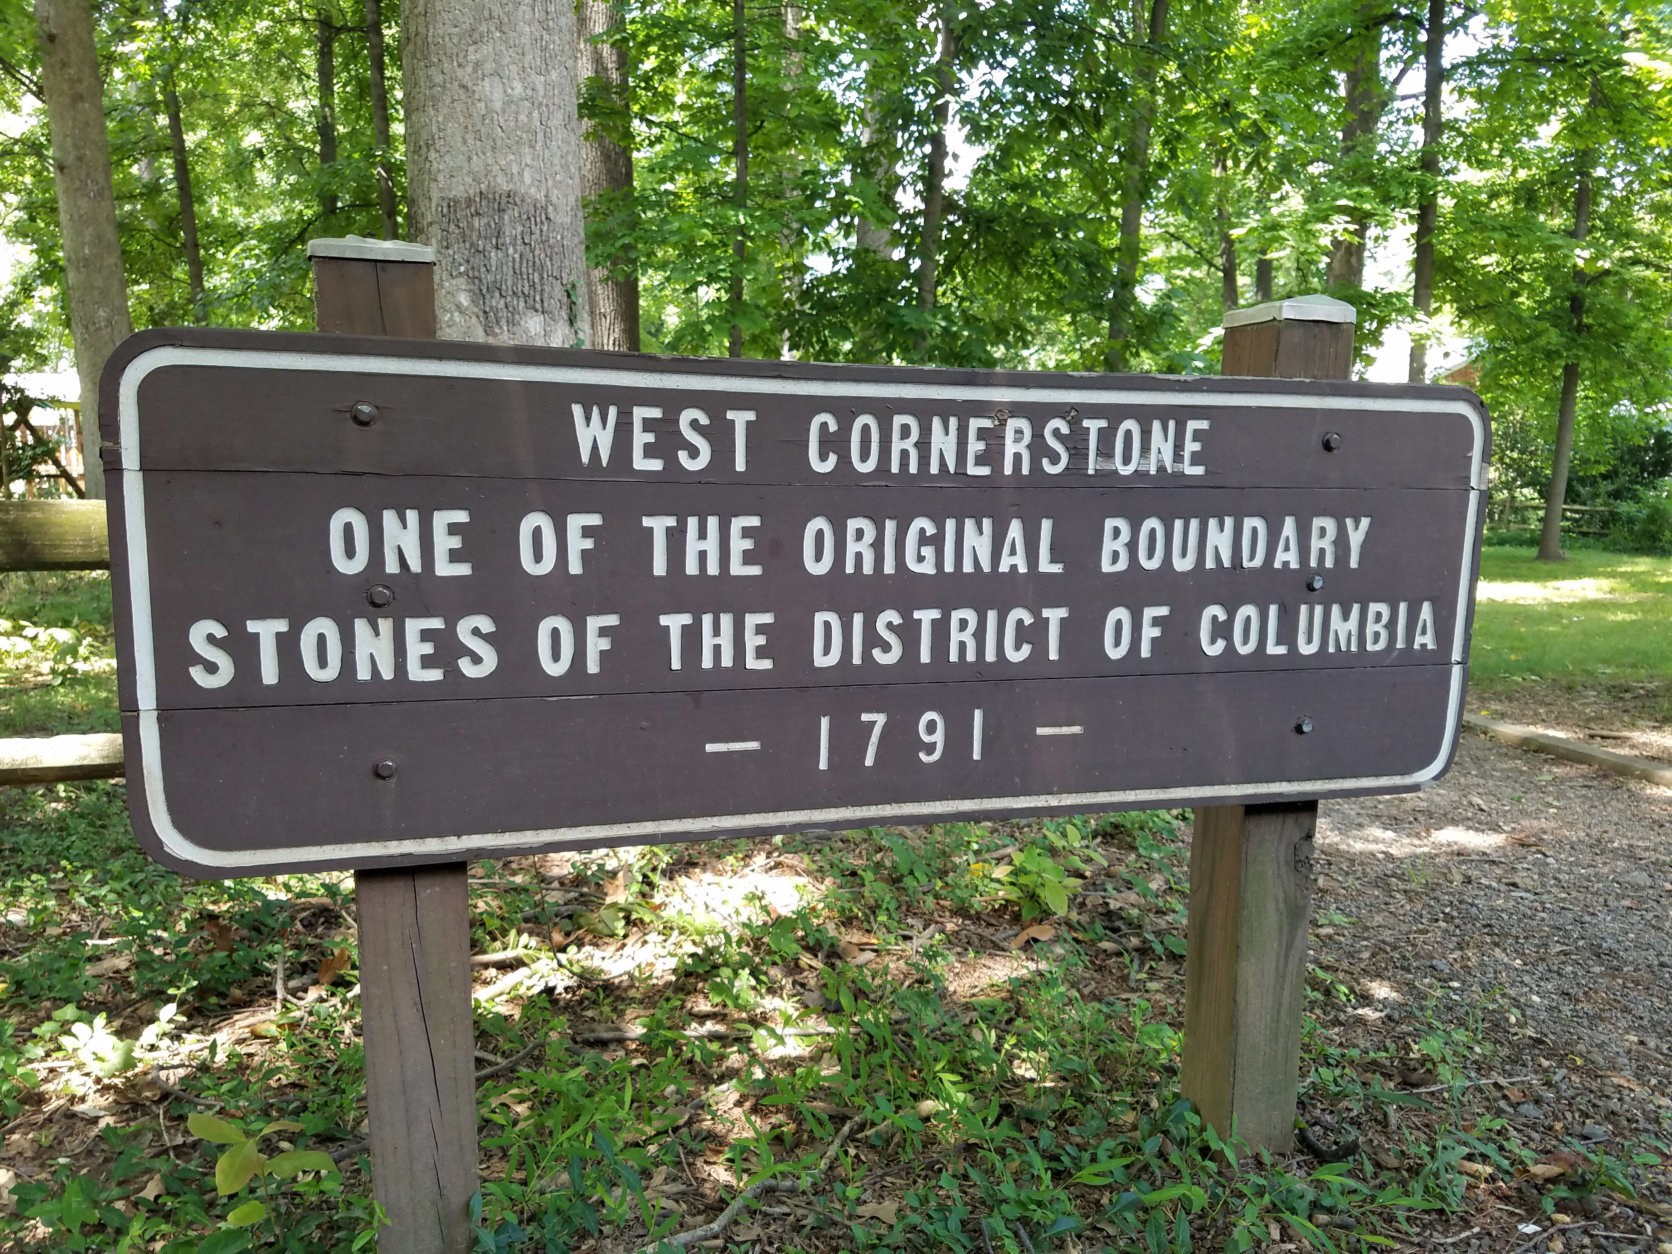 The west cornerstone rests in Andrew Ellicott Park in Falls Church. (WTOP/William Vitka)